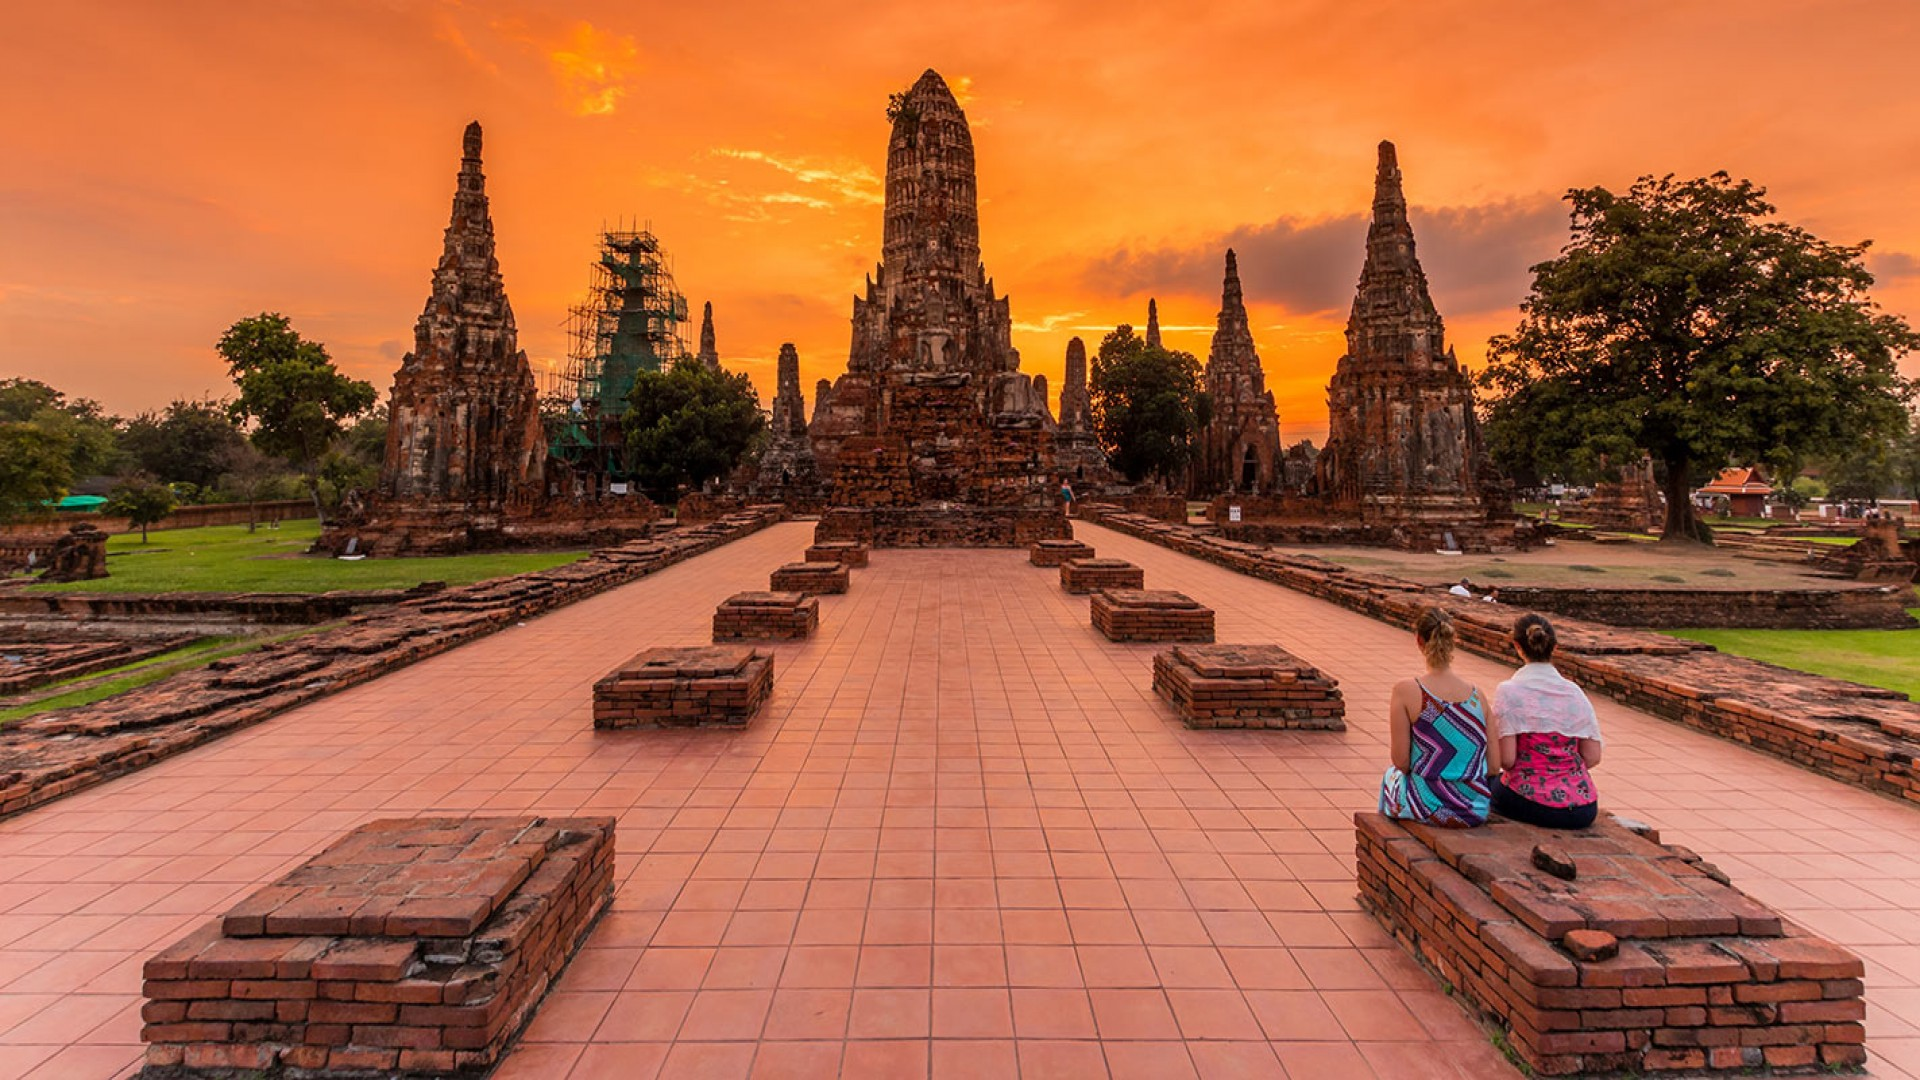 AYUTTHAYA - ANCIENT CAPITAL OF THAILAND